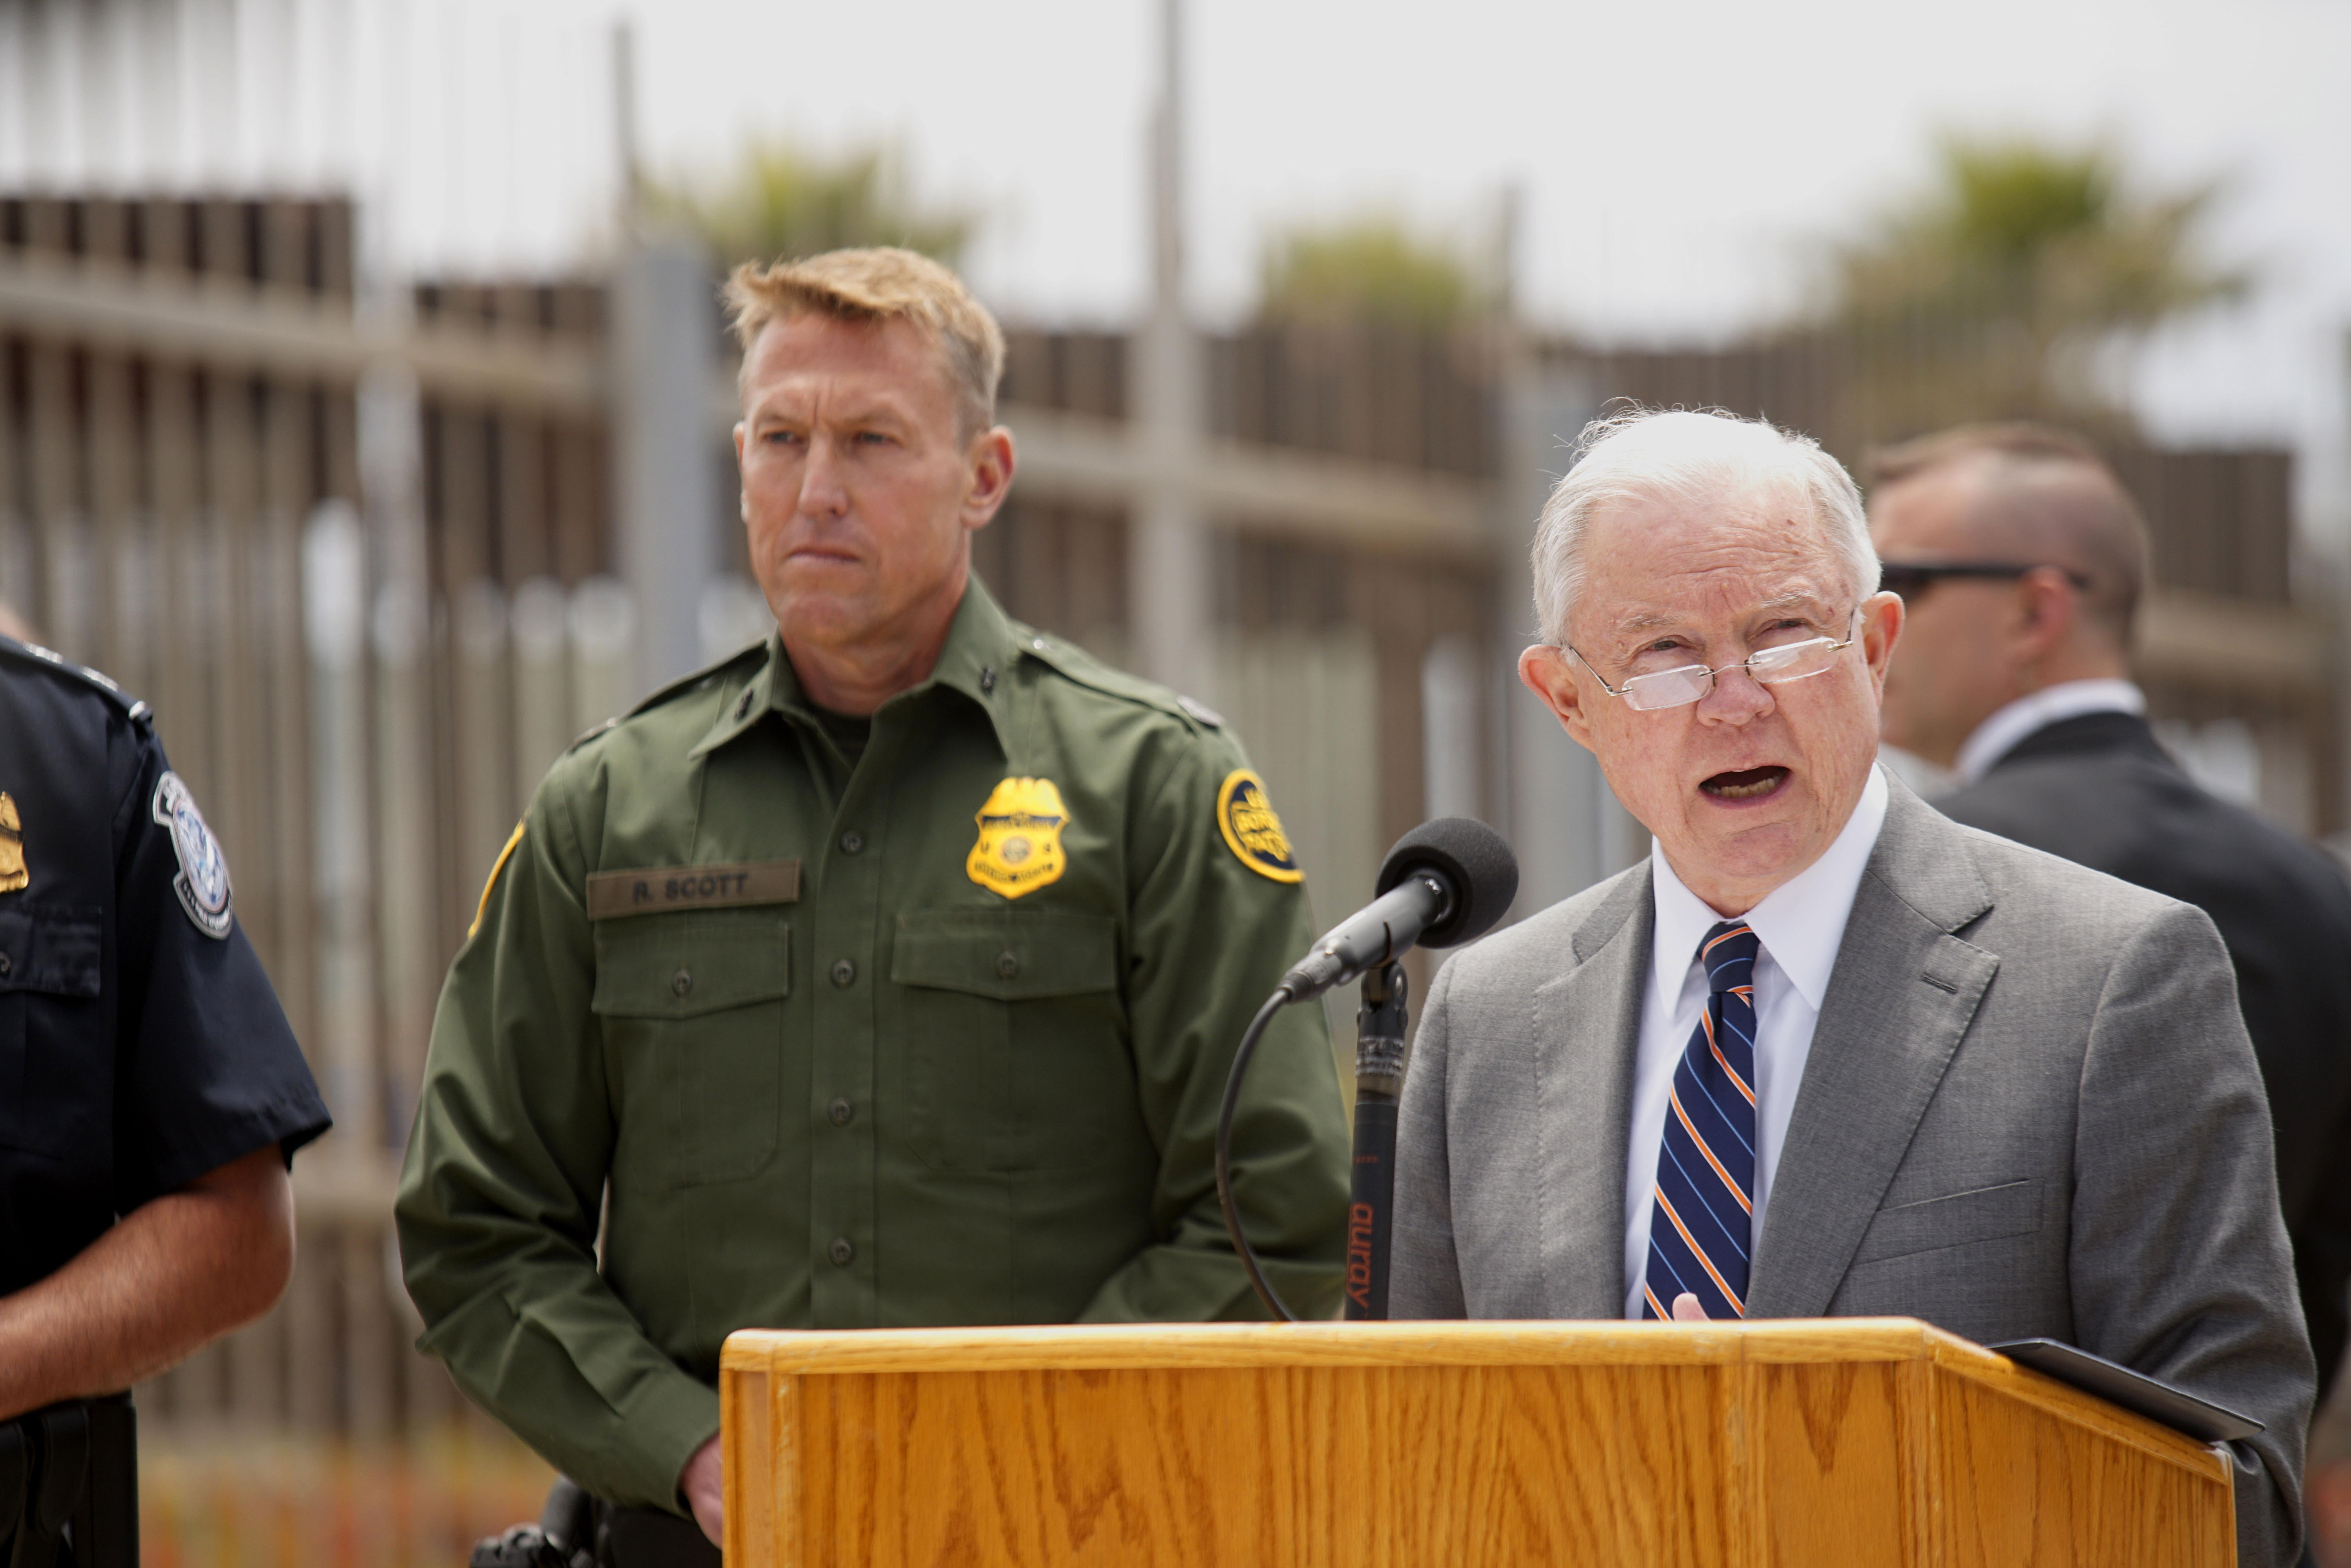 Attorney General Jeff Sessions speaks from a podium at the border.